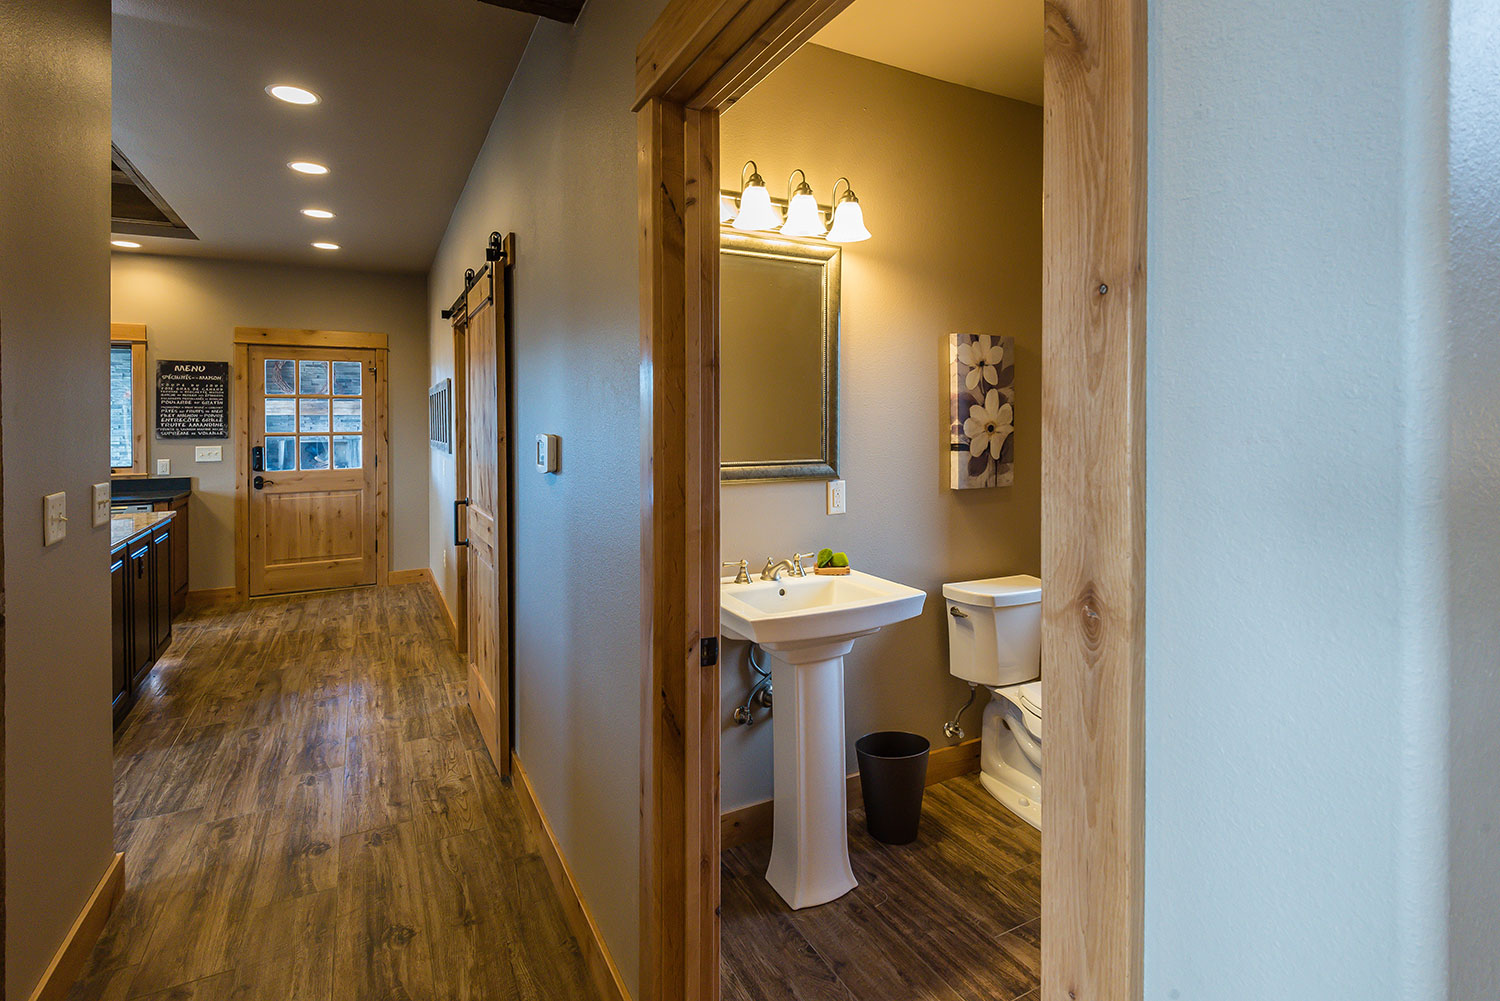 View down hallway into kitchen with a side view of a vanity with a pedestal sink and toilet in the bathroom